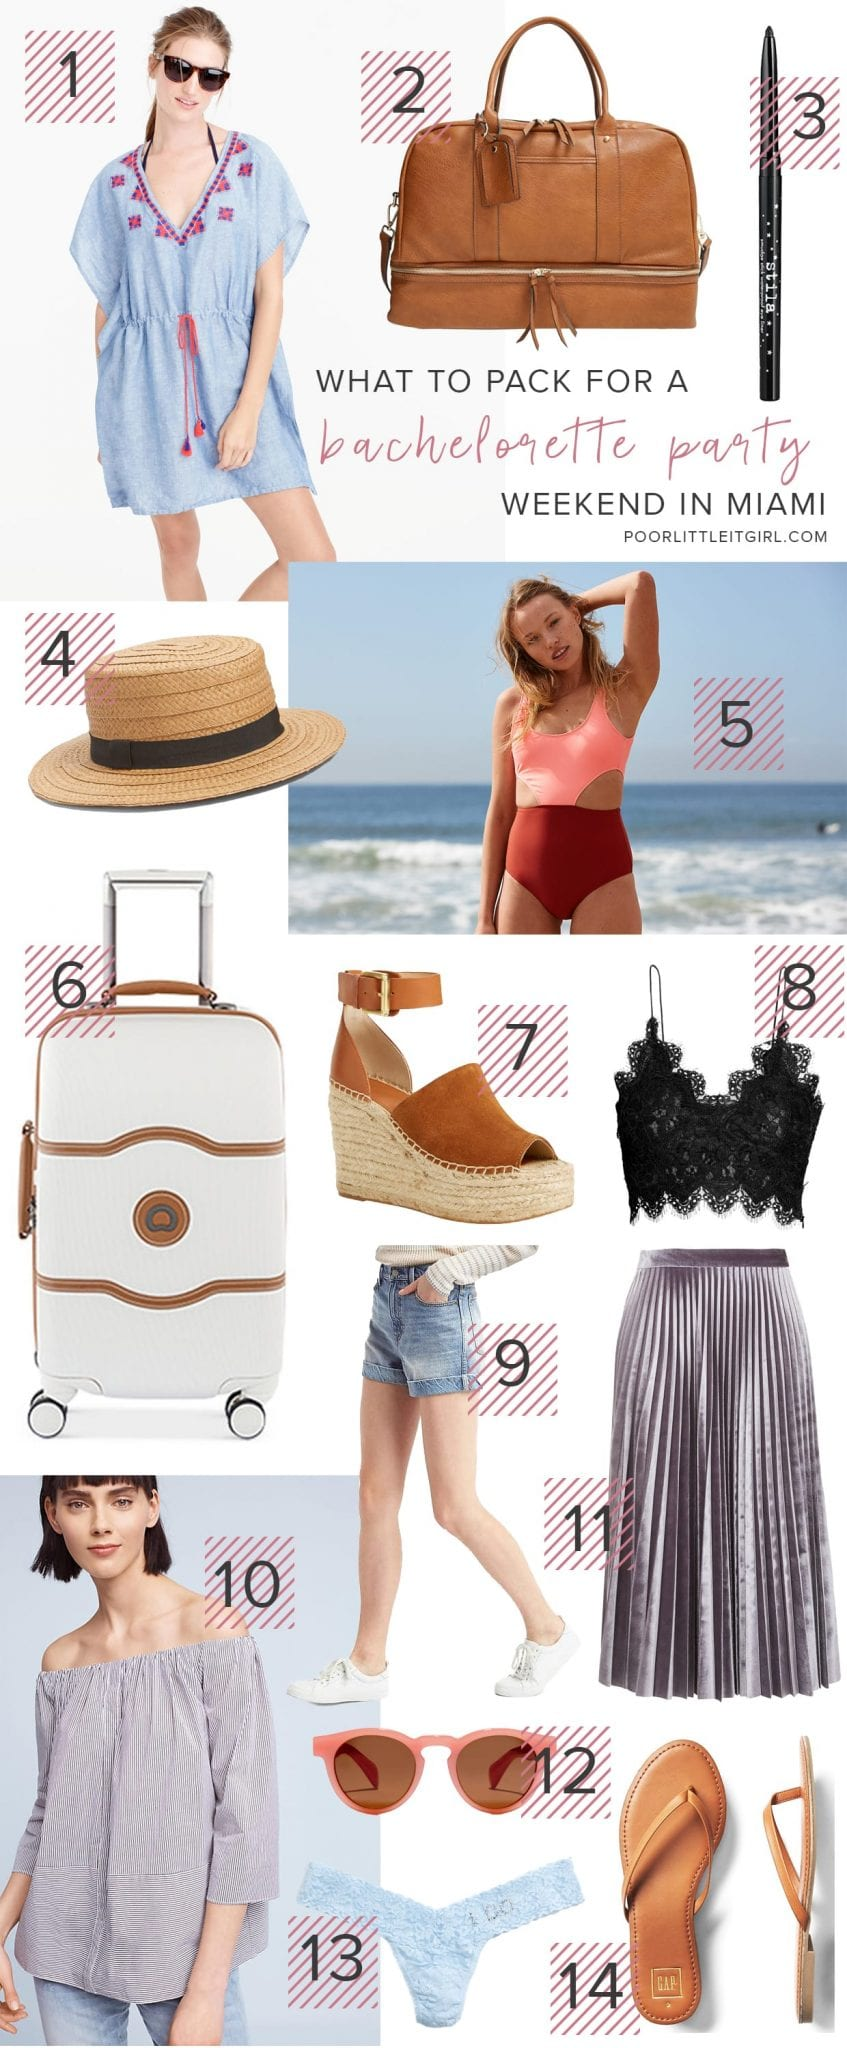 What To Pack For A Bachelorette Party In Miami - Poor Little It Girl